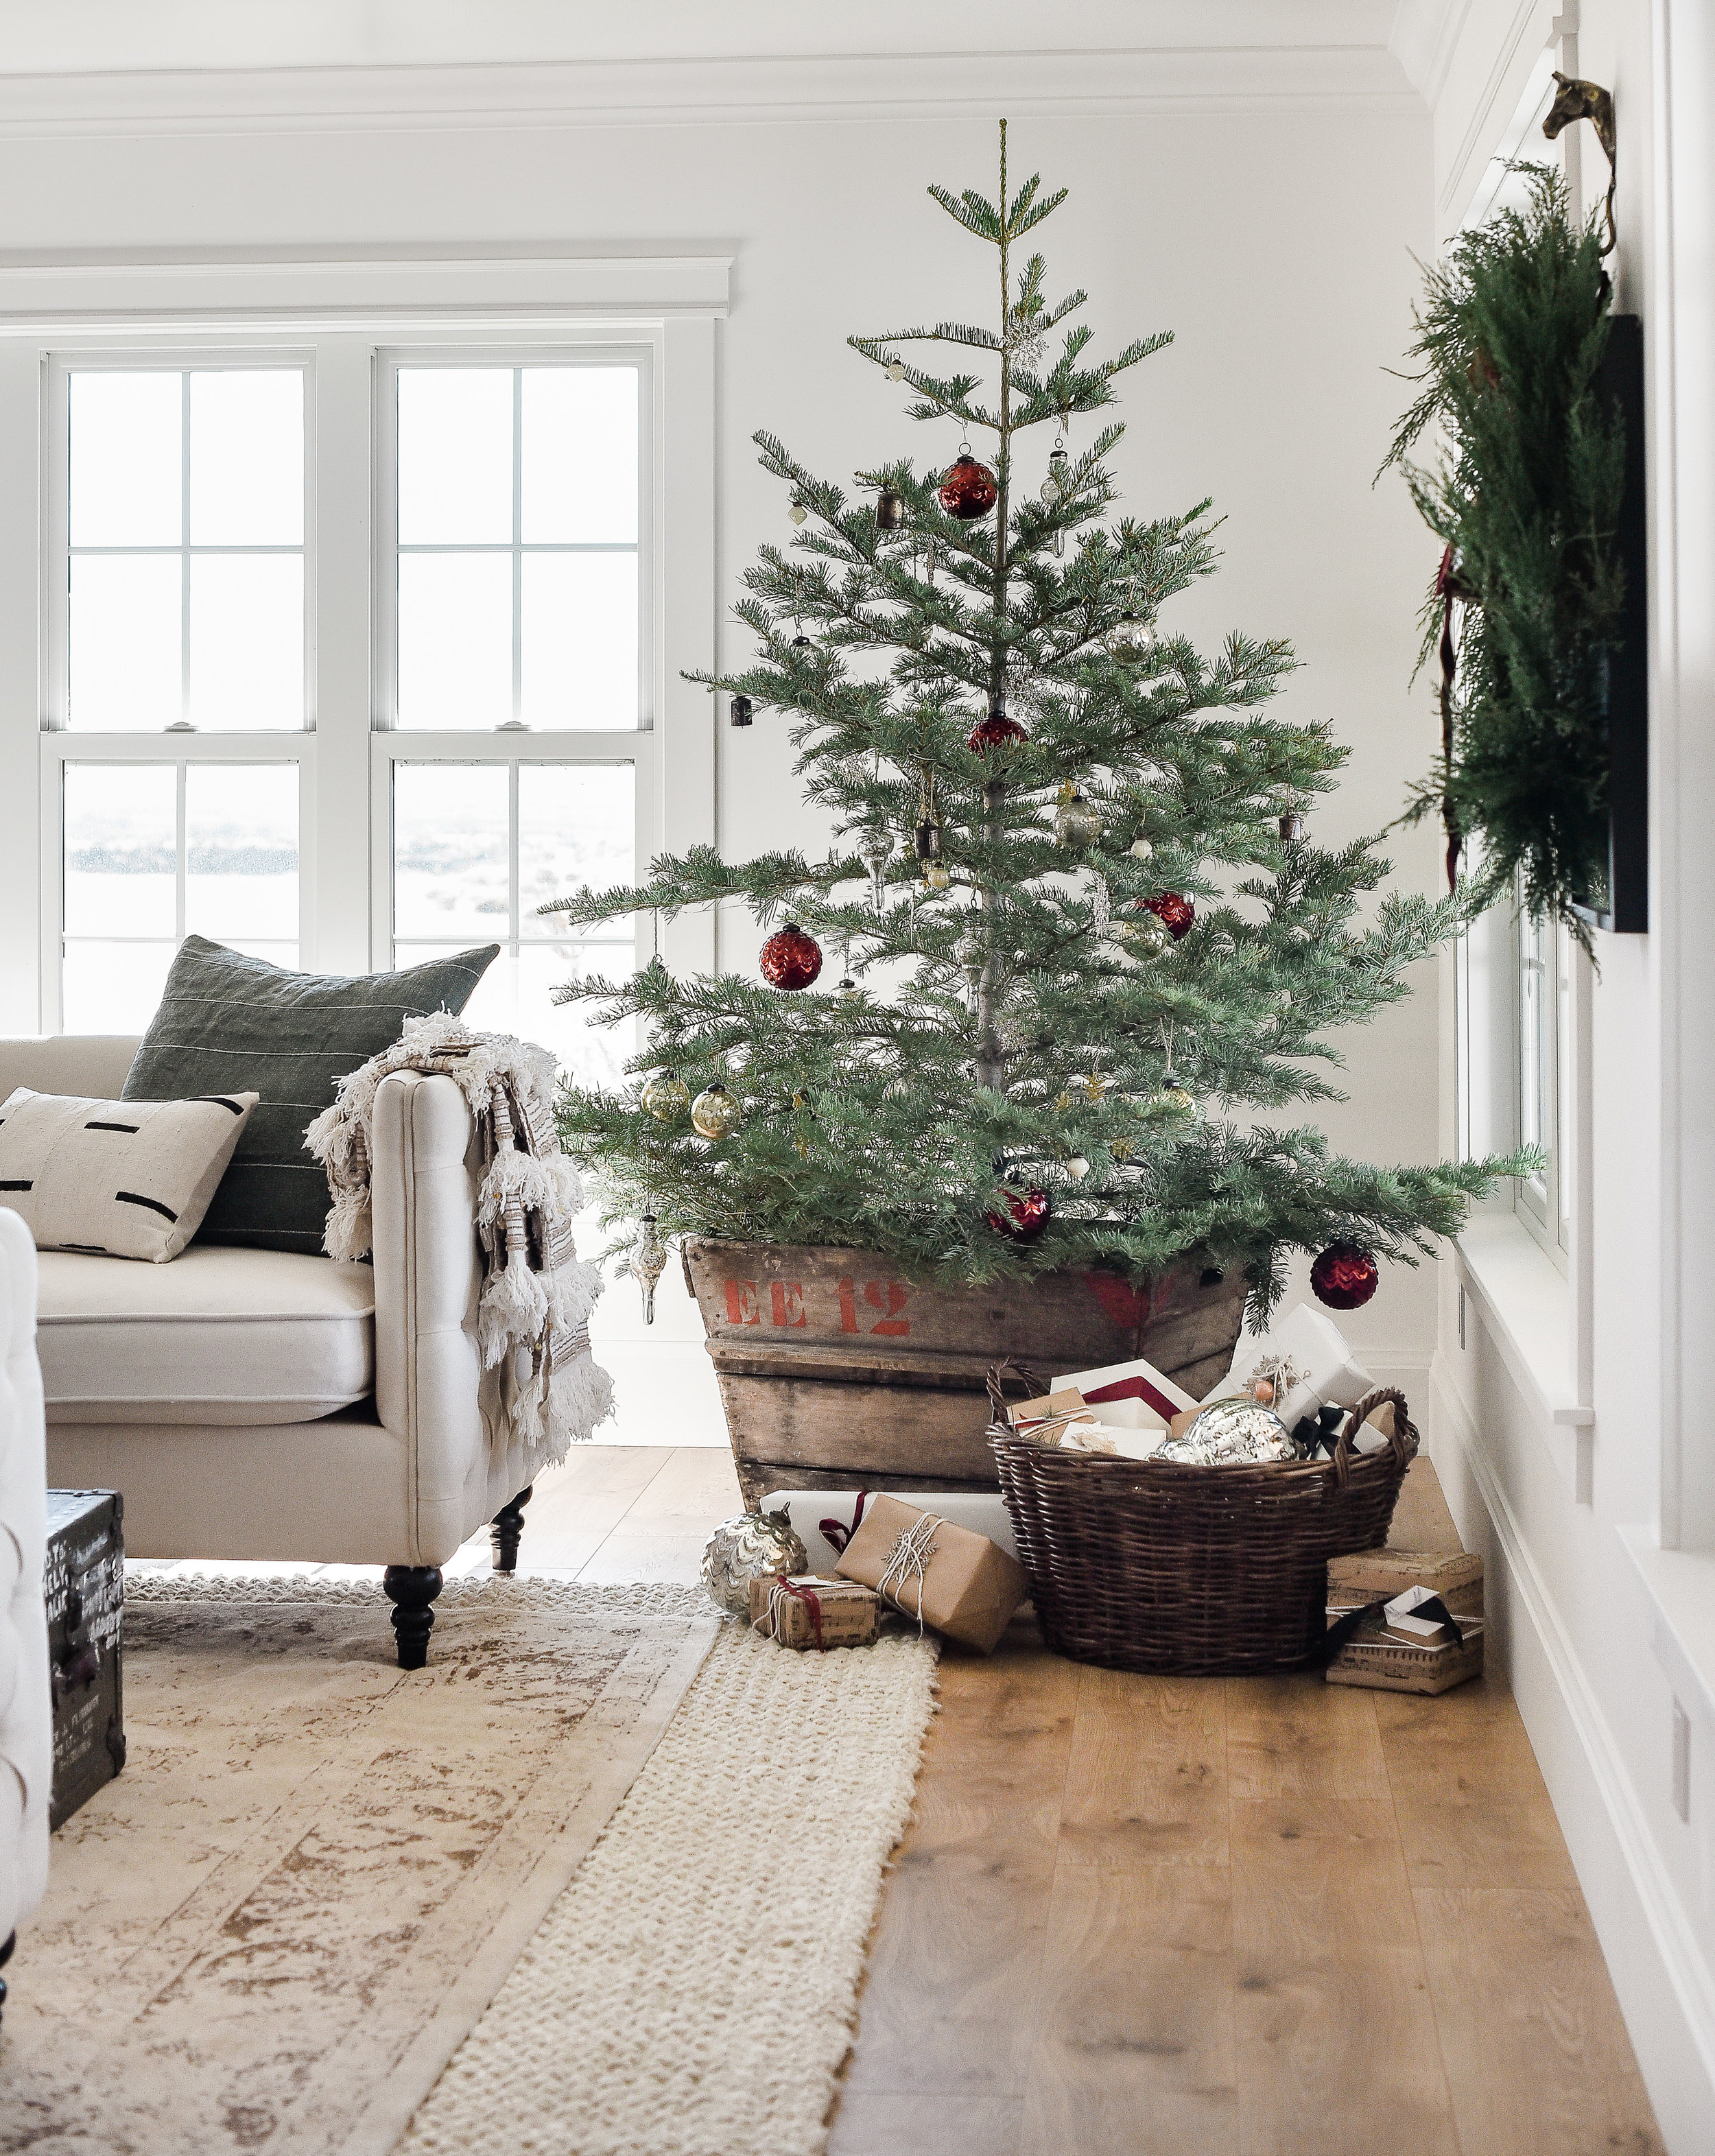 Stop by for a Christmas home tour showcasing the homes of over ten farmhouse bloggers! Get inspired this year with beautiful & unique ideas to decorate your home for Christmas!